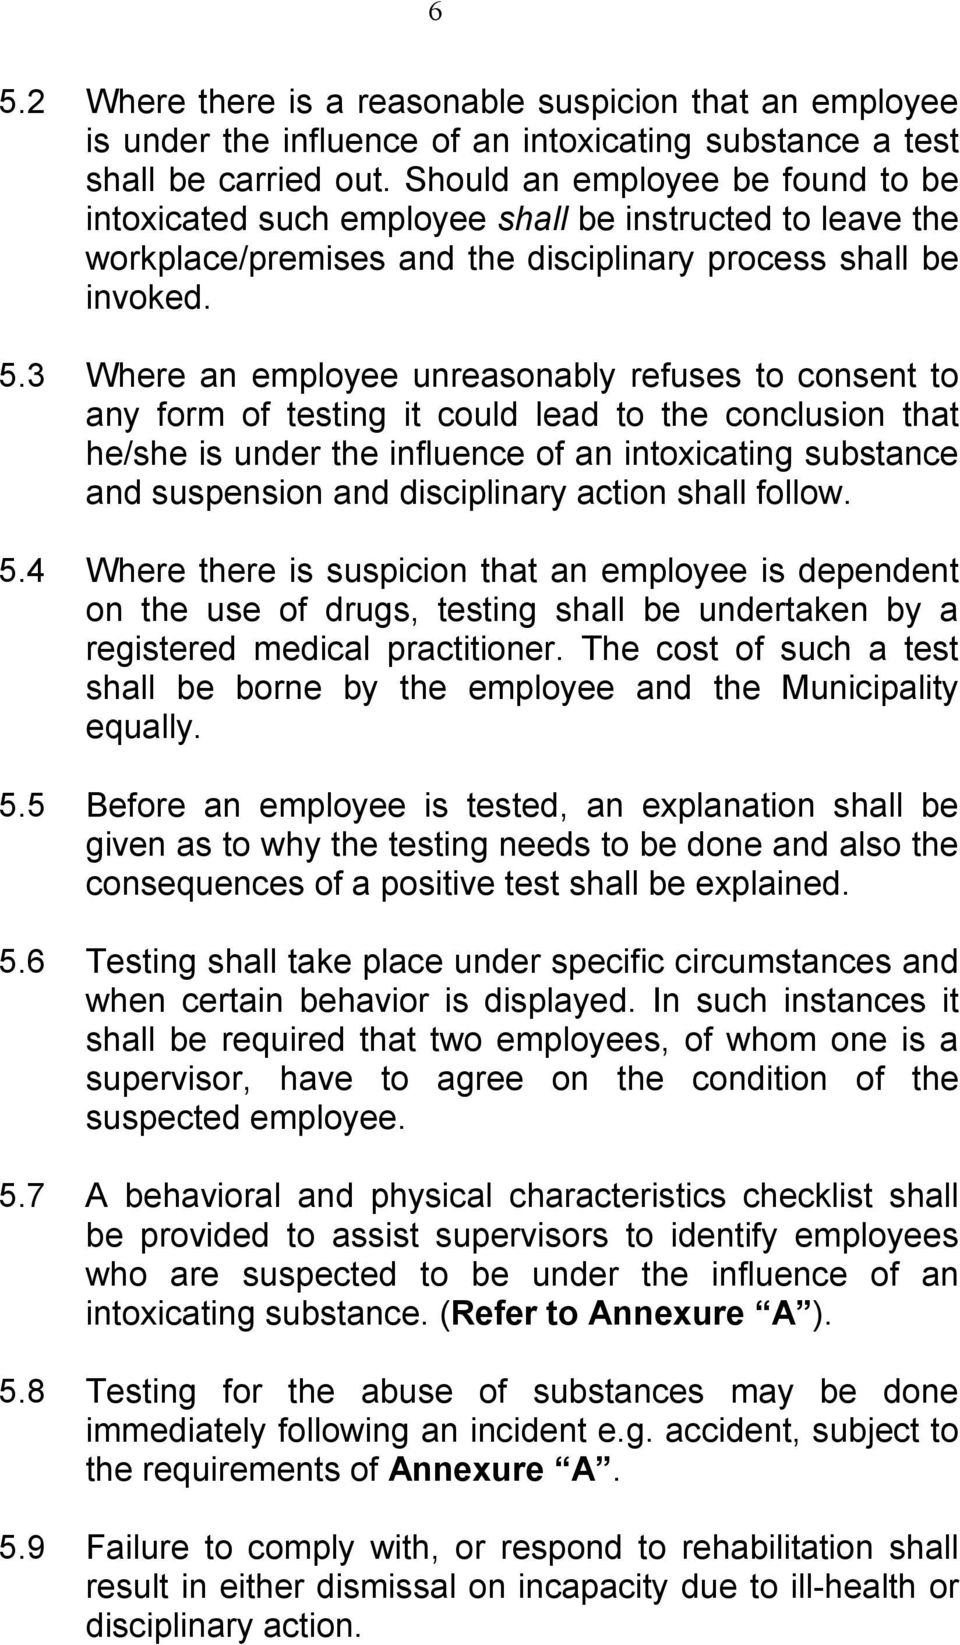 3 Where an employee unreasonably refuses to consent to any form of testing it could lead to the conclusion that he/she is under the influence of an intoxicating substance and suspension and